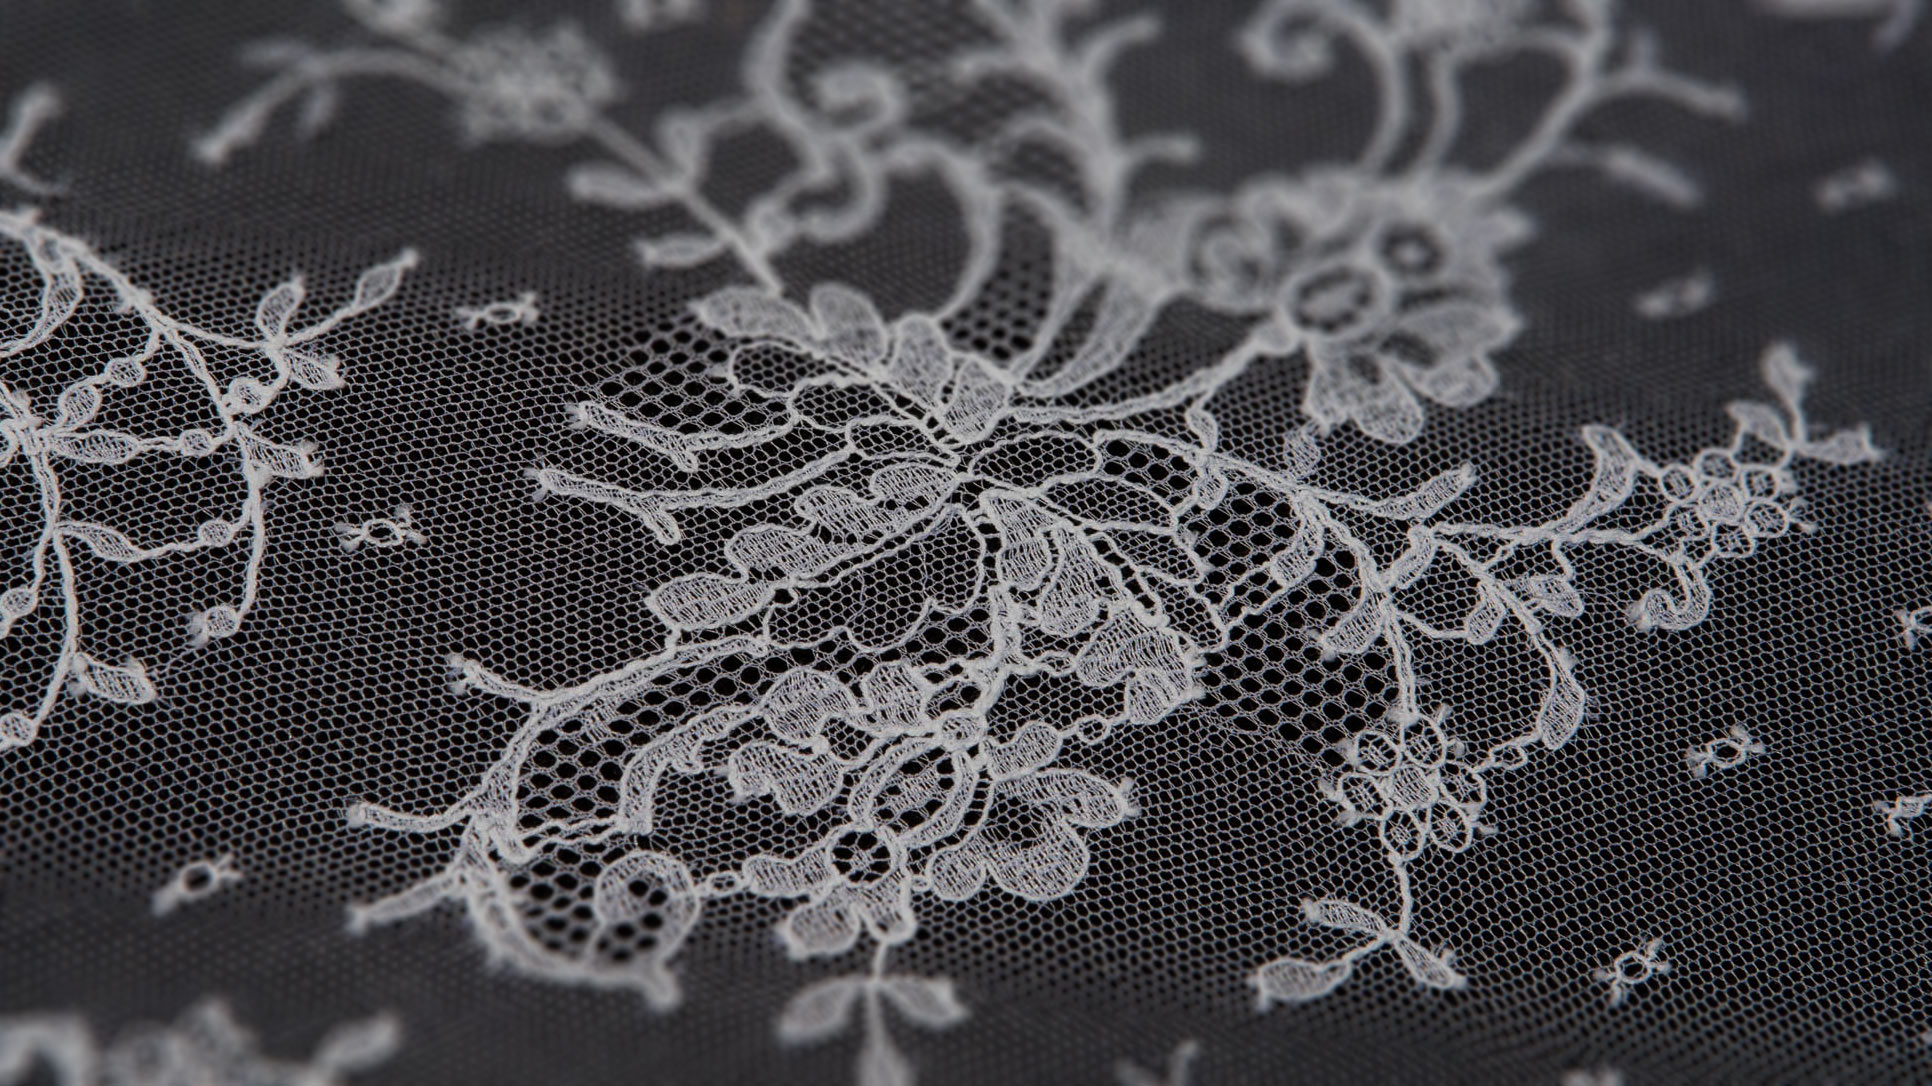 Welcome to China biggest african lace fabric online store - ingmecanica.ml, we supply a large selection of african Lace Products at Apparel. Including organza lace, Frence lace, big cotton lace, swiss voile lace, dry lace Find your favourite lace fabric for wedding to become the most happiness girl.